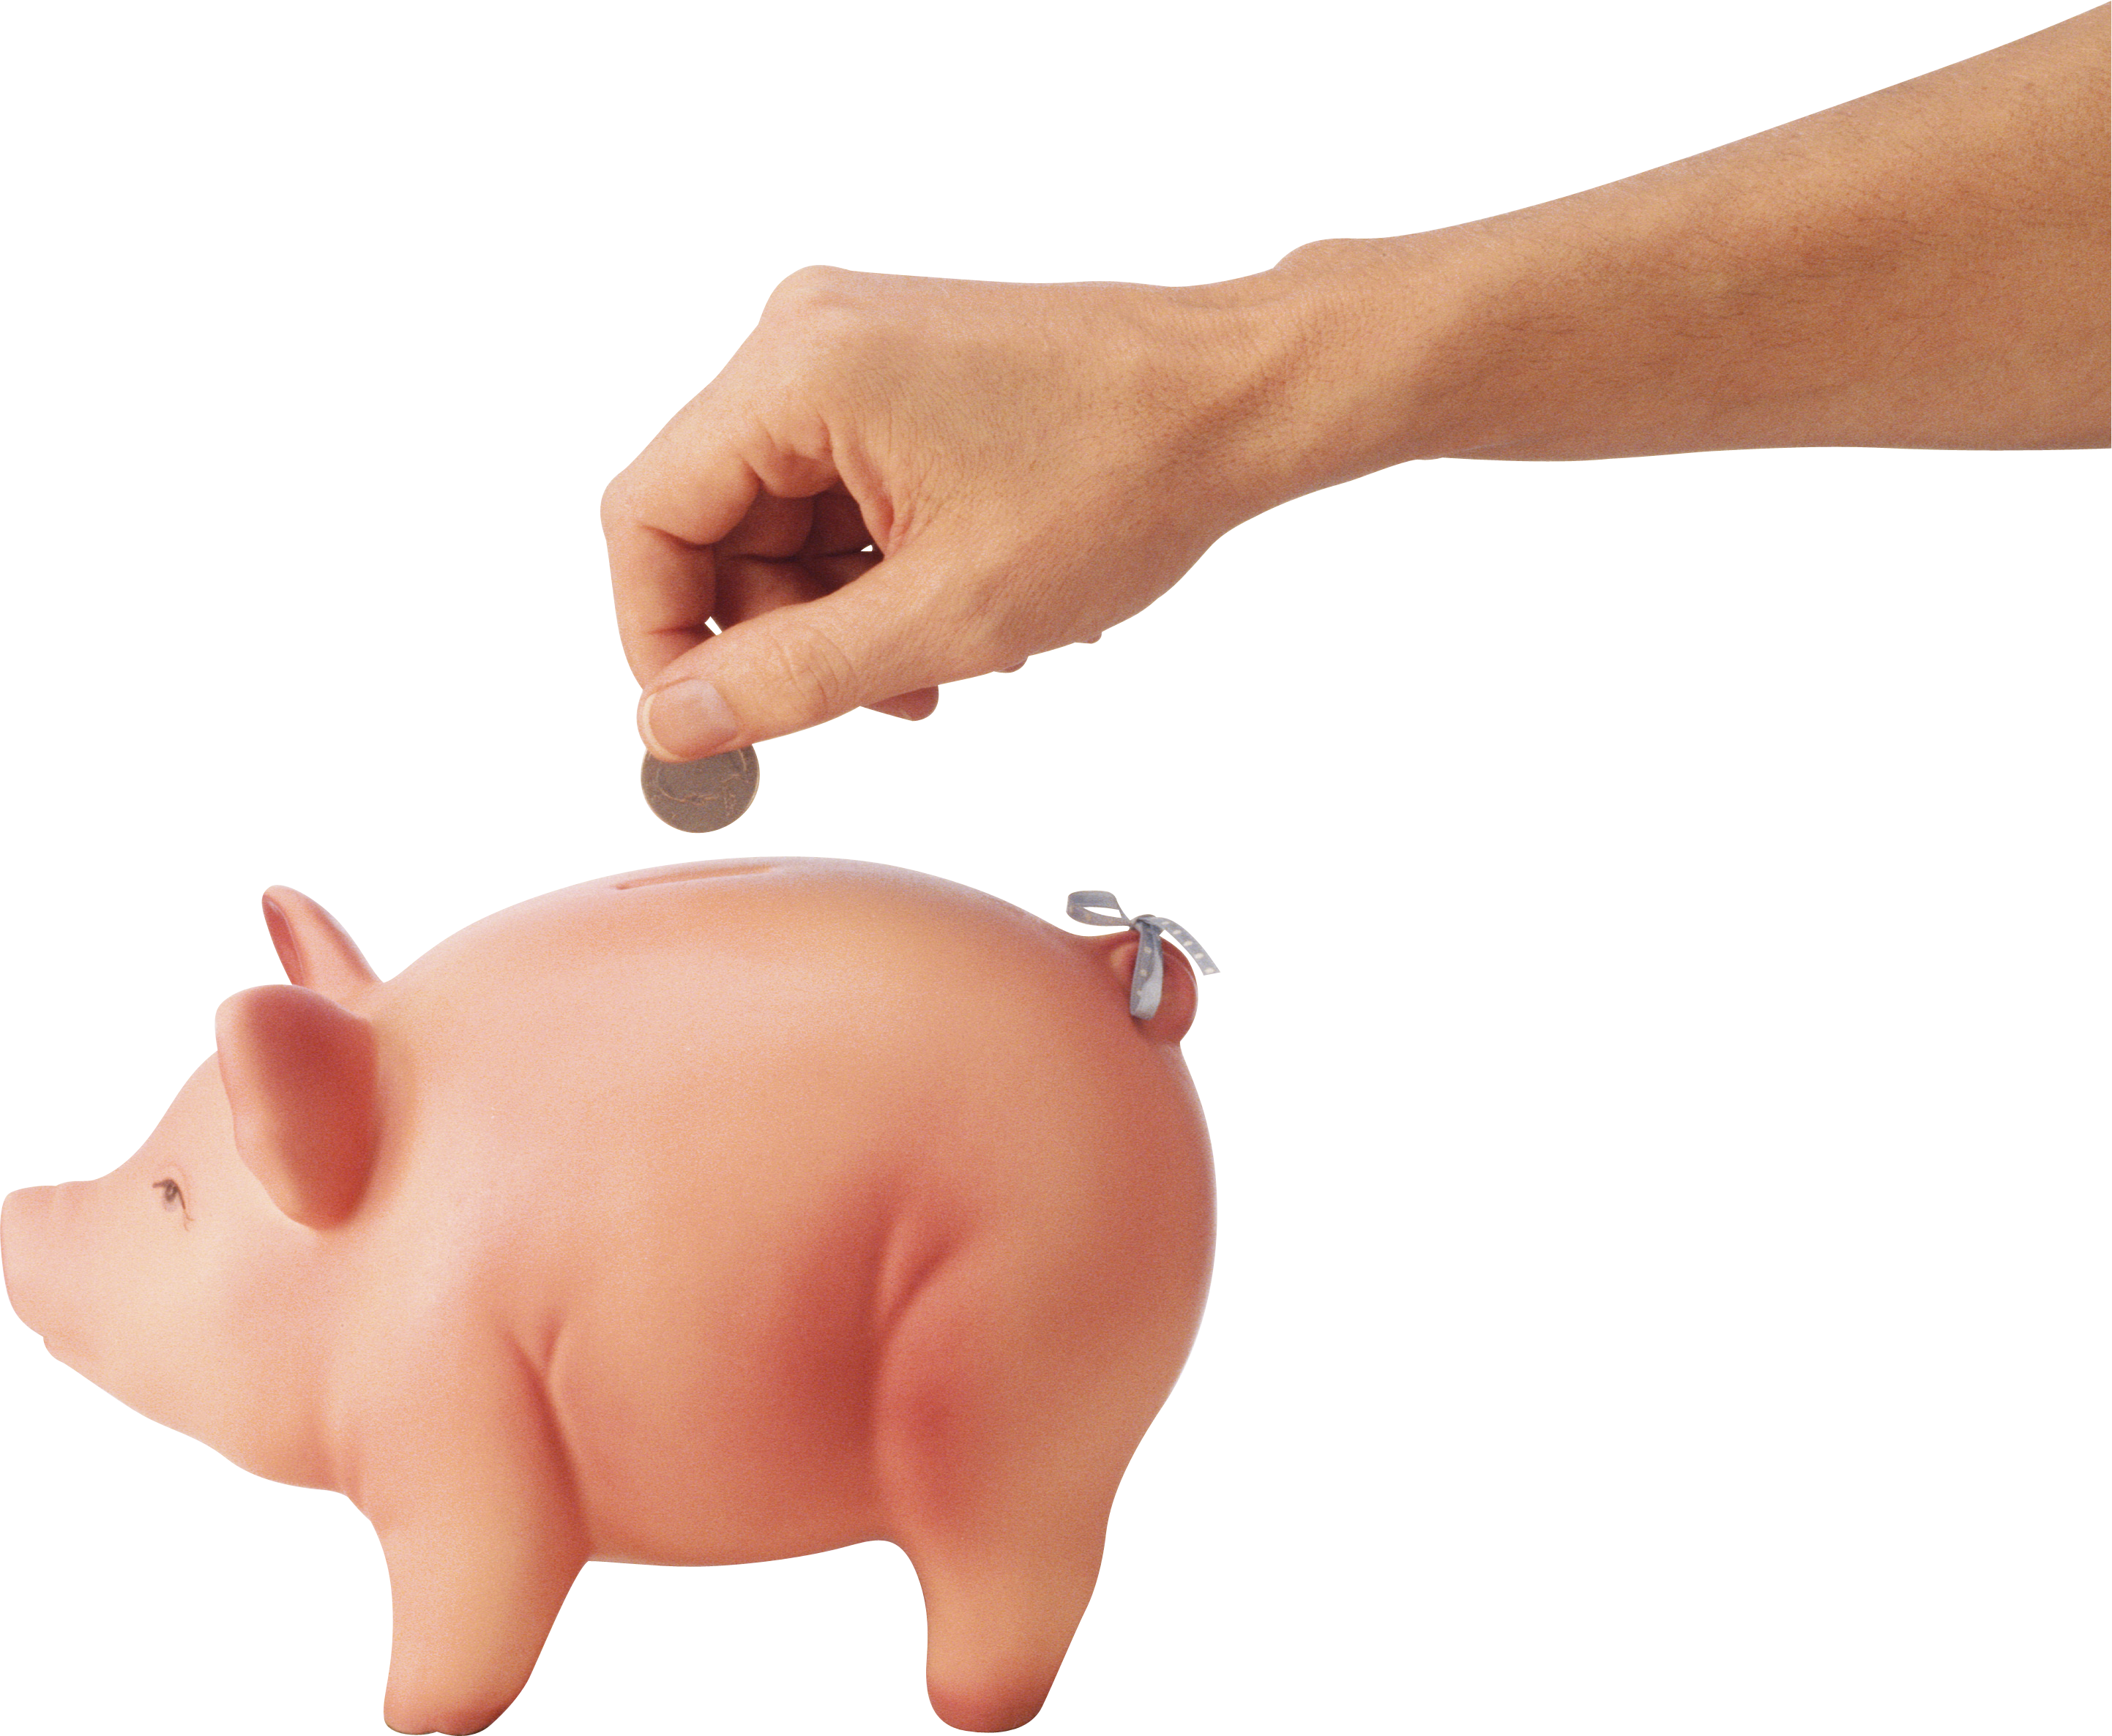 Woman holding money clipart clipart freeuse stock Hand Putting Money Into Saving Pig | Isolated Stock Photo by noBACKS.com clipart freeuse stock